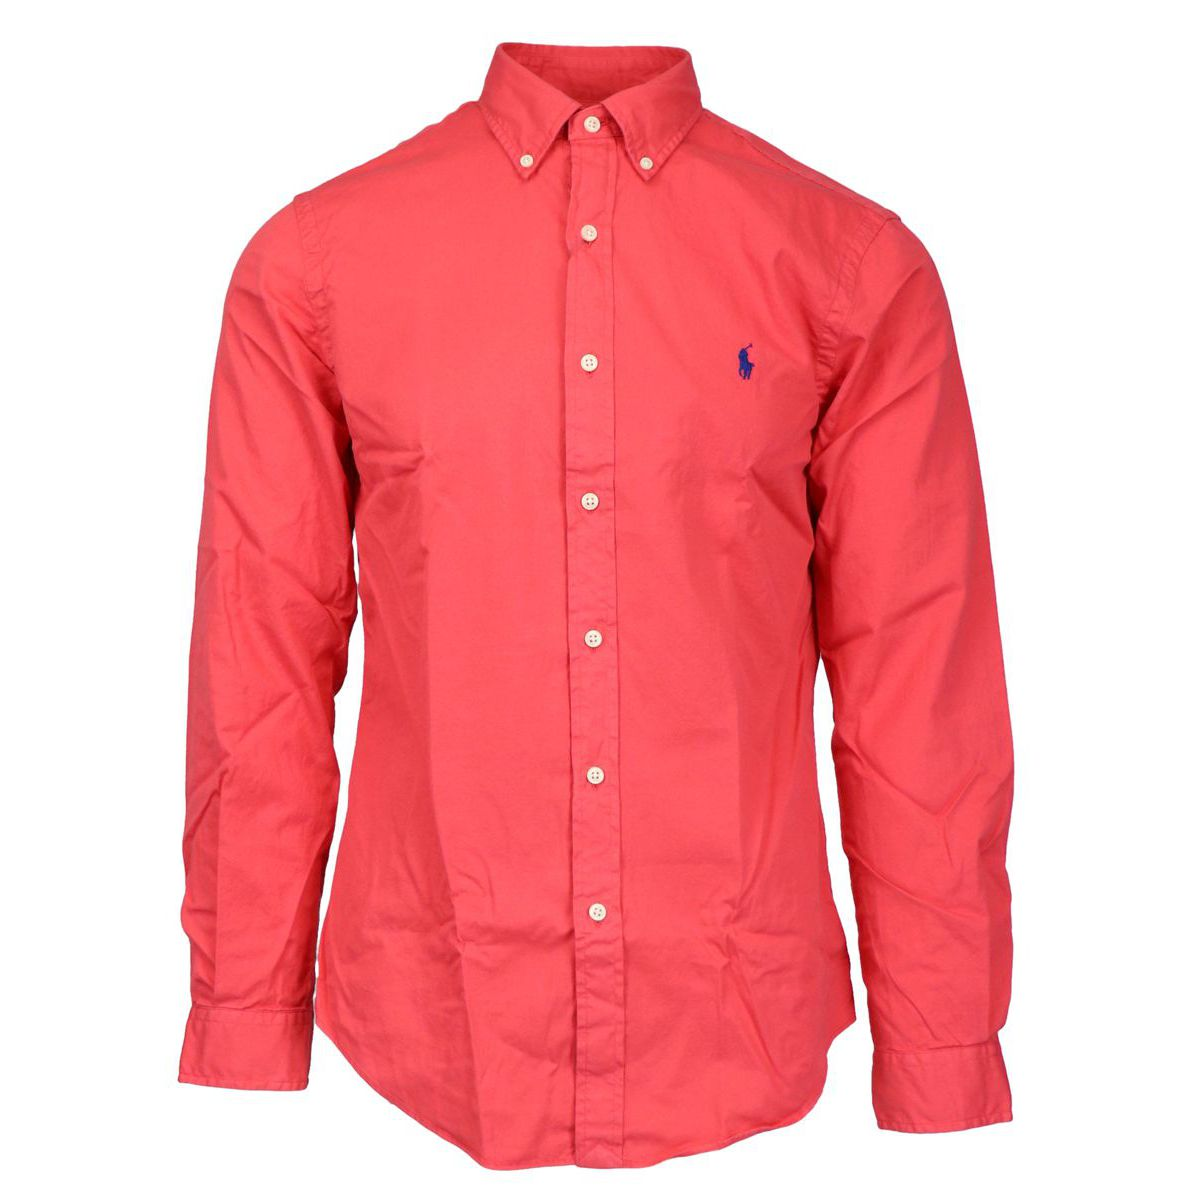 Slim-fit cotton shirt with button-down collar Coral Polo Ralph Lauren